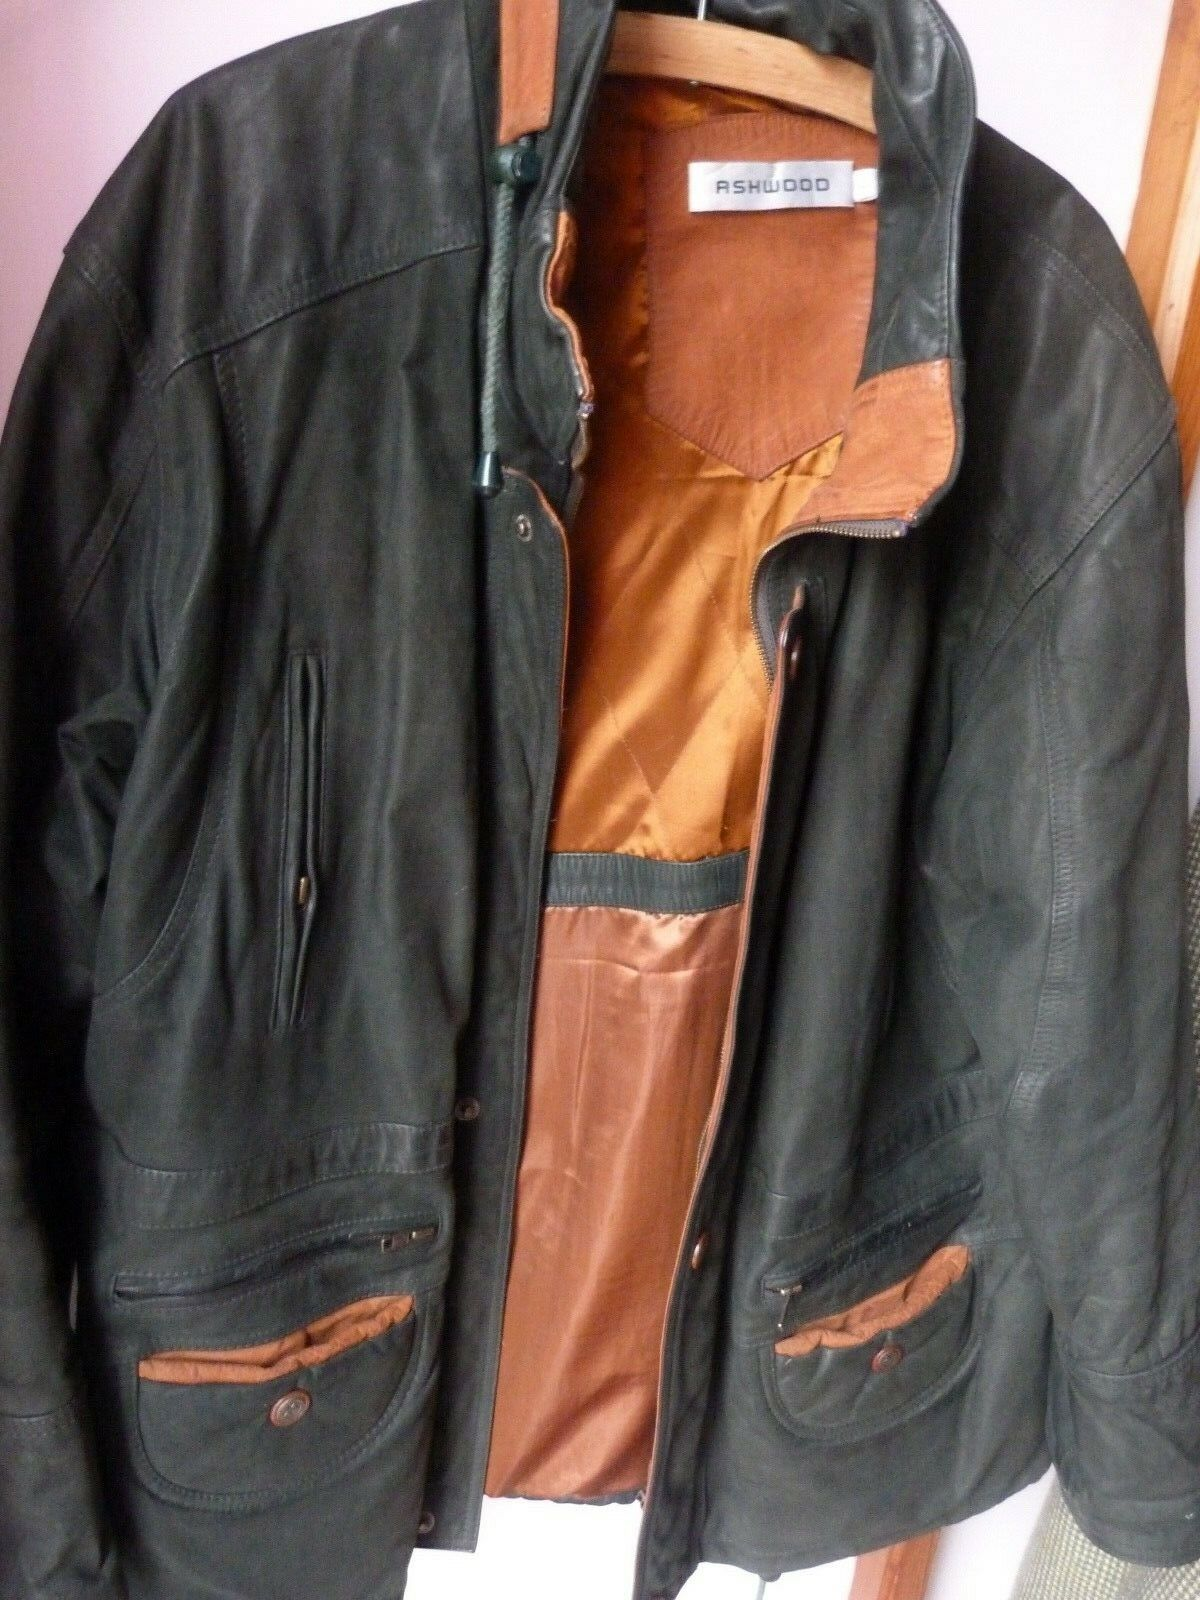 Ashwood leather men's coat size L approx 38 40 Bottle Green brown leather warm